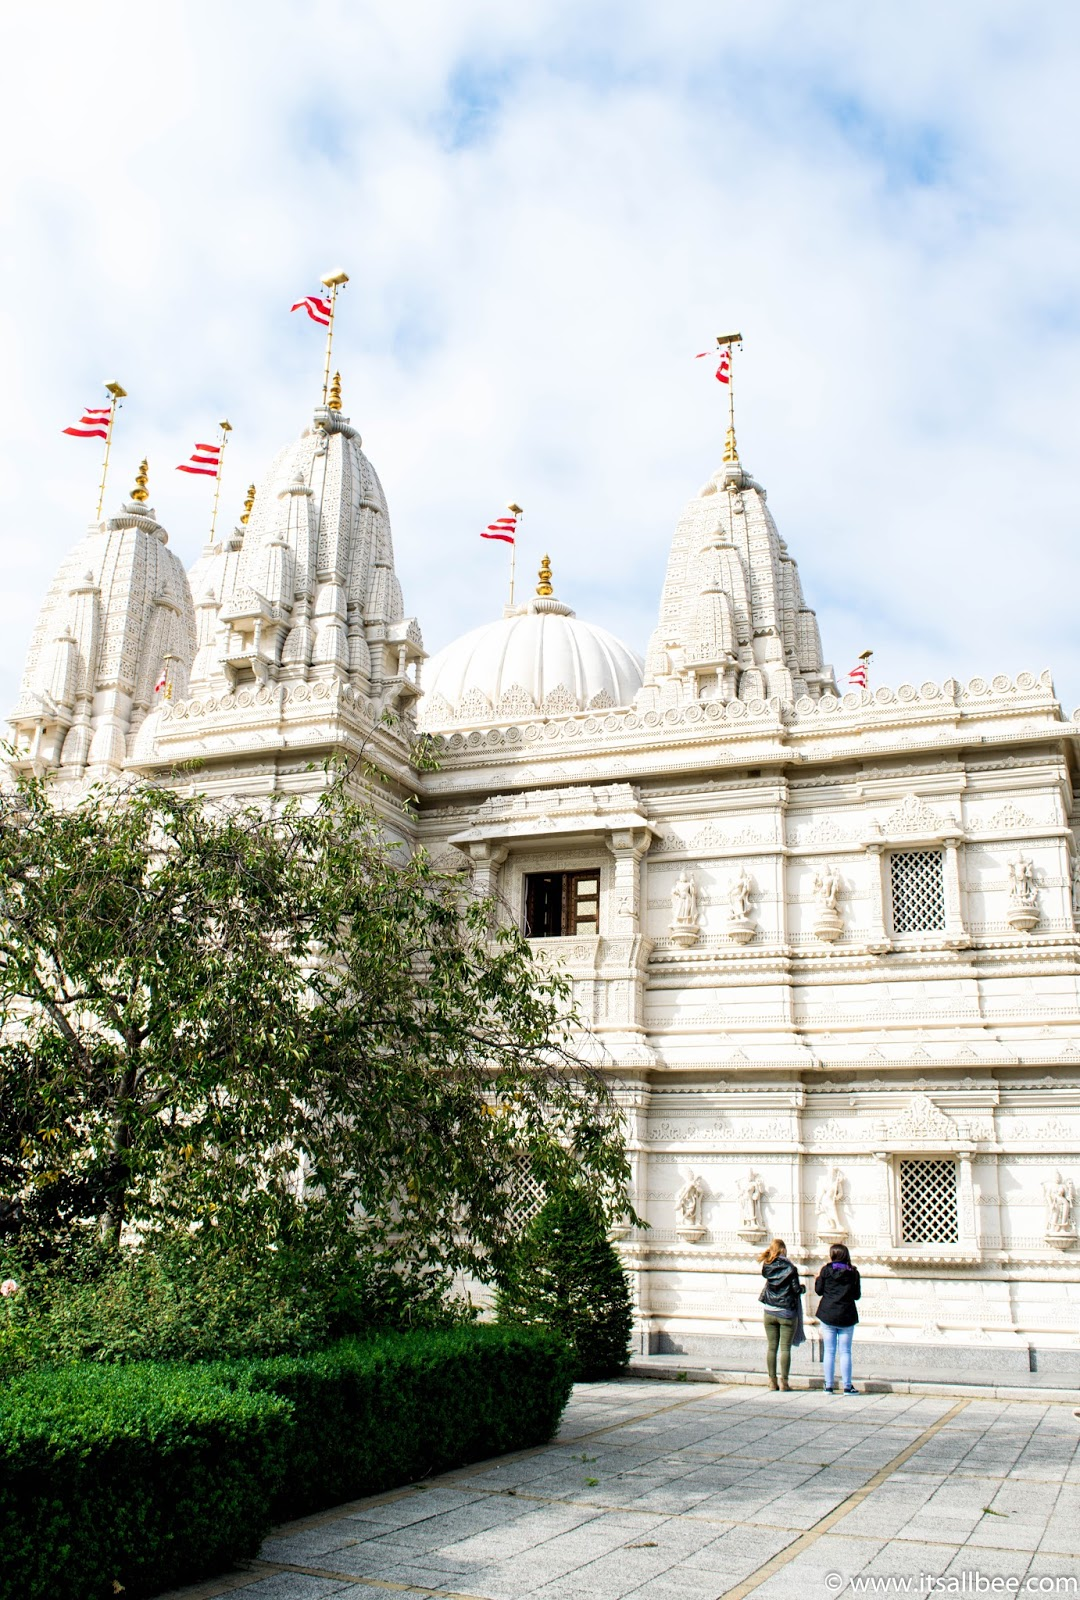 You wont believe this insanely beautiful - Neasden temple | Baps Shri-Swaninarayan Mandir